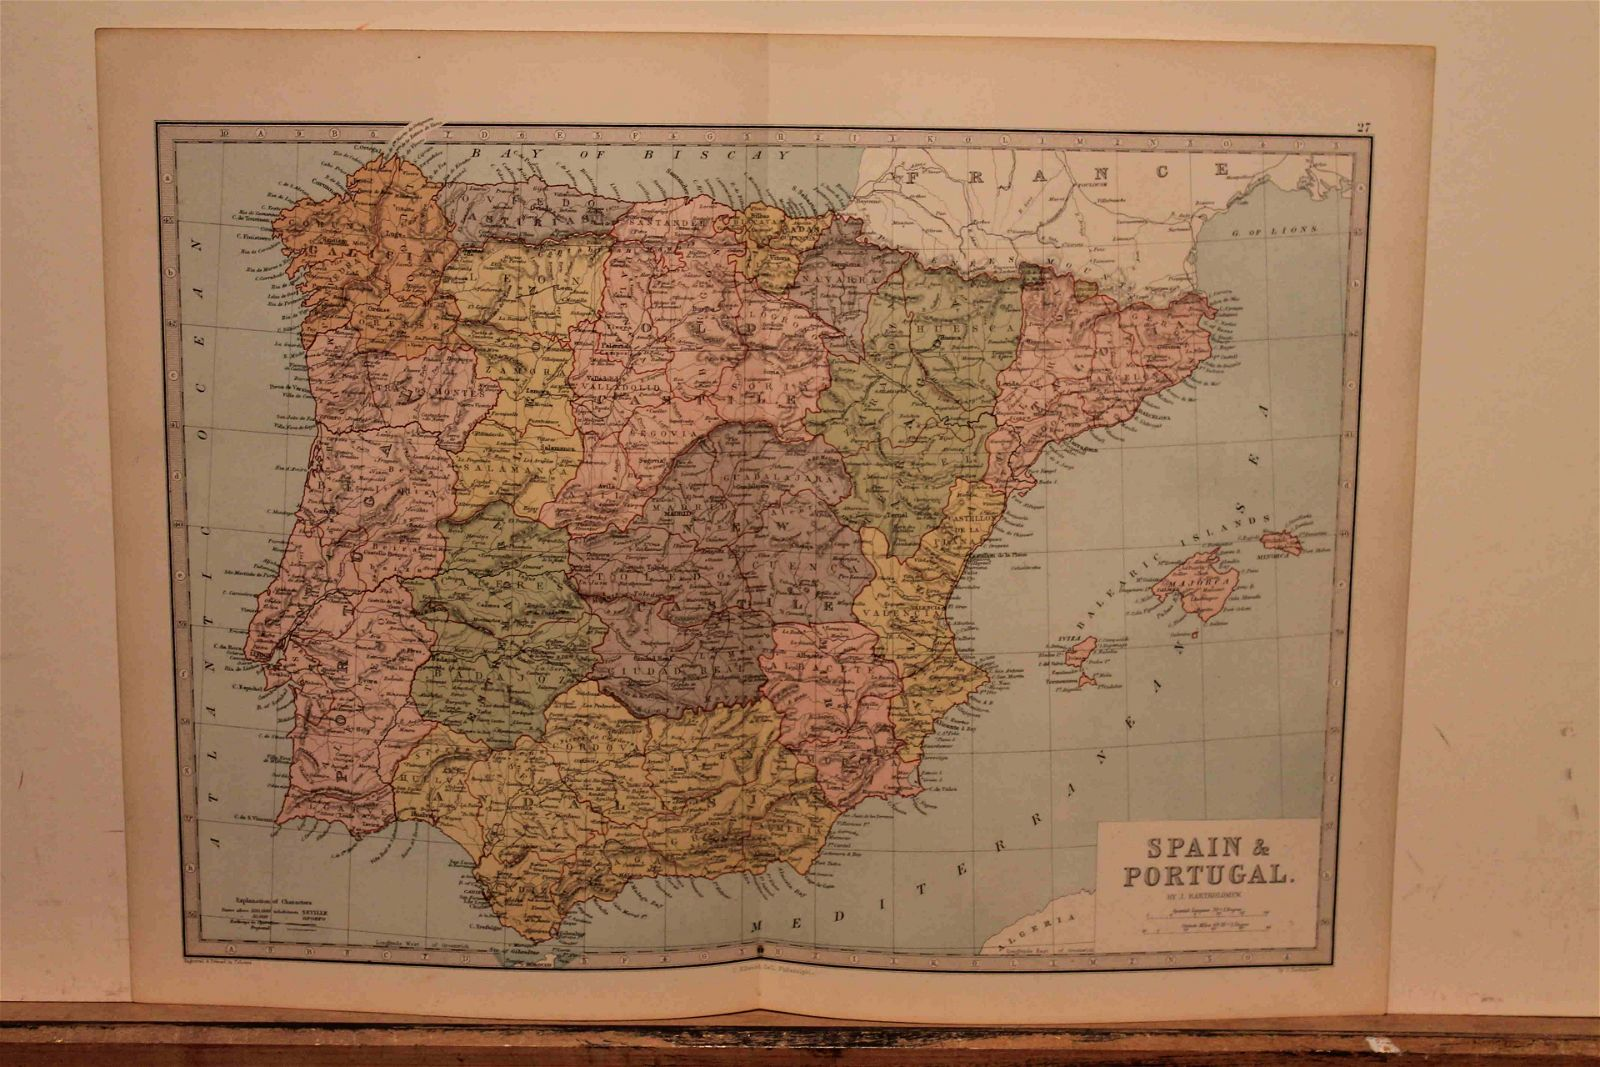 1873 Map of Spain and Portugal